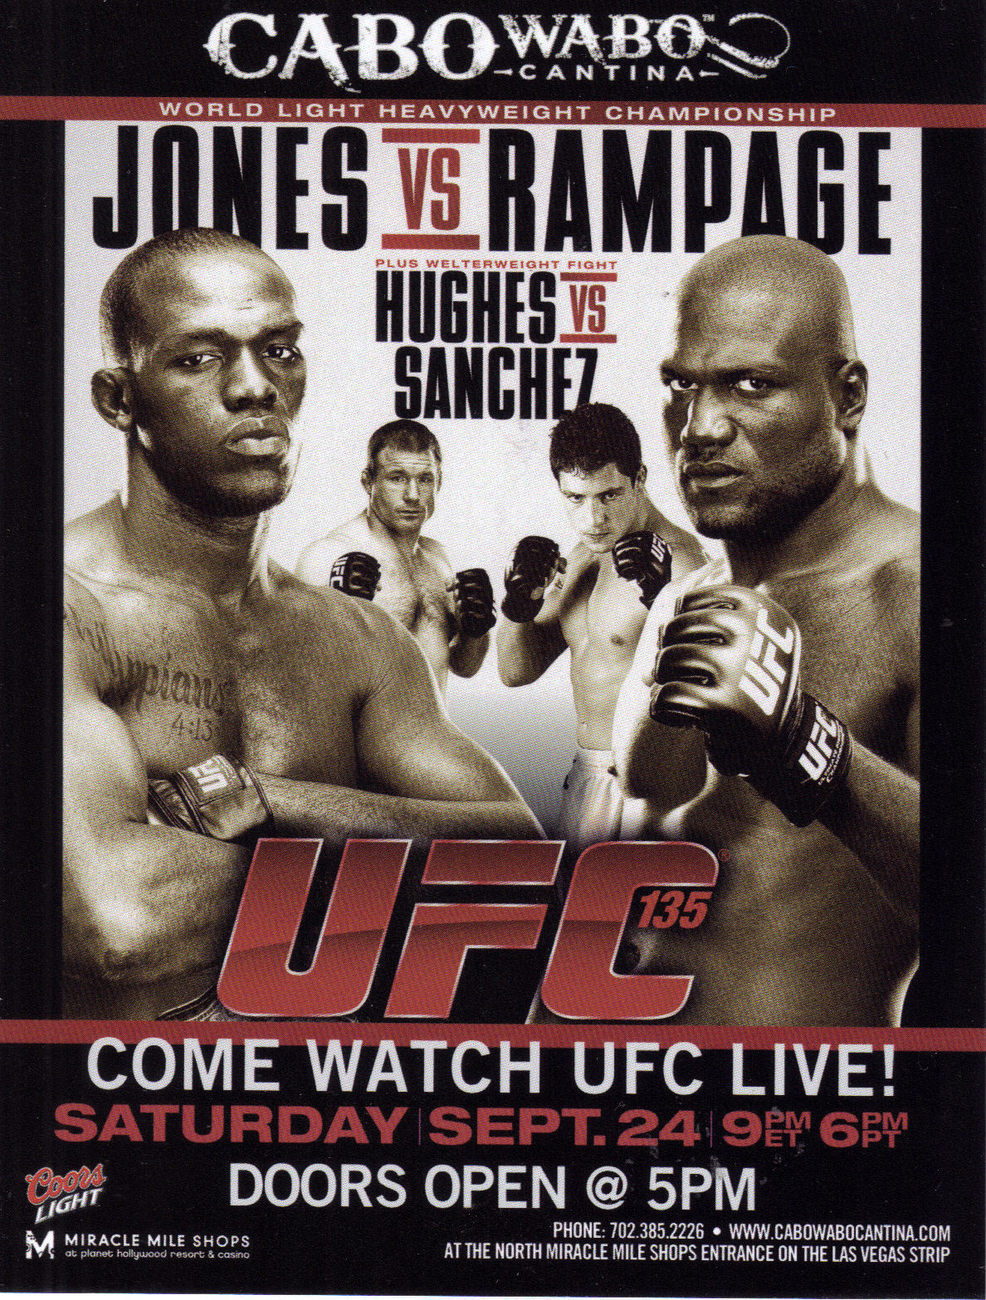 UFC 135 JONES vs RAMAPGE Vegas Boxing Card